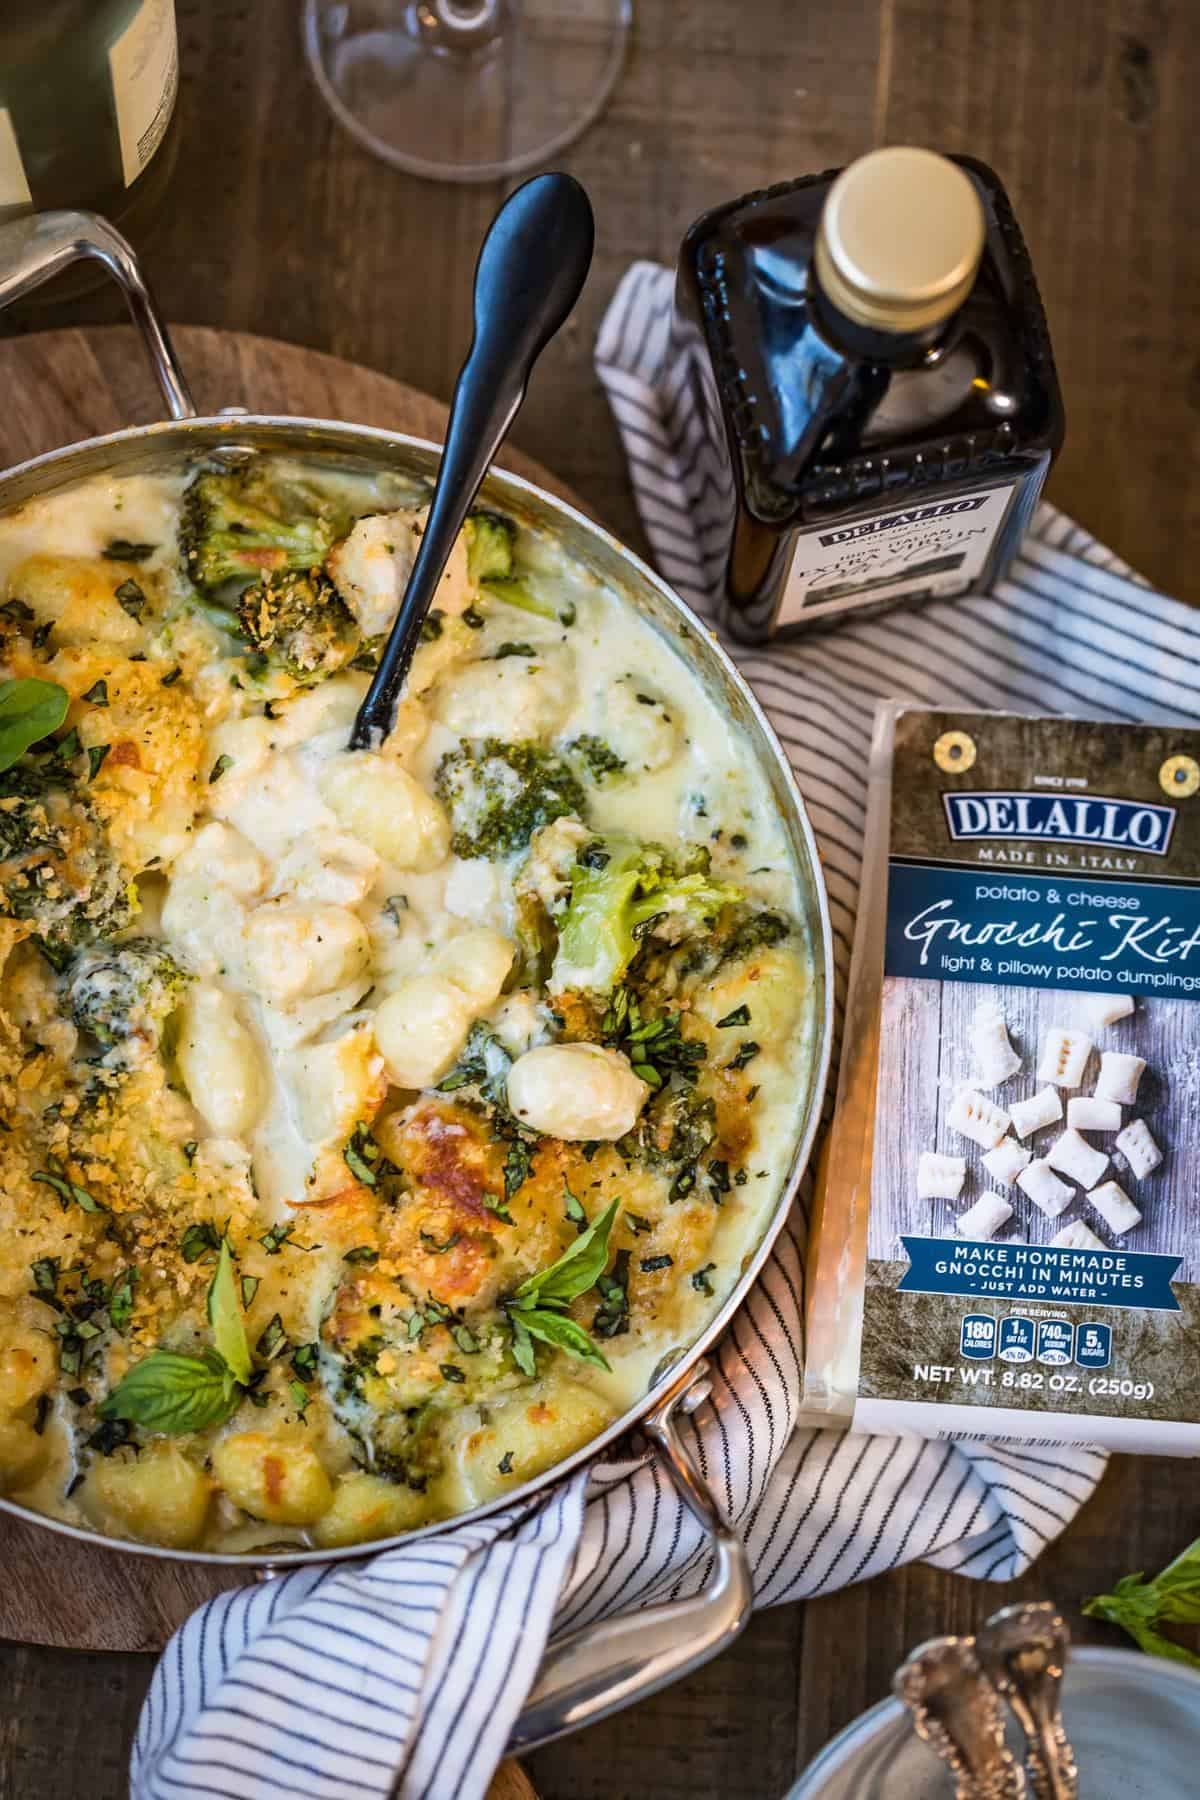 Over the top view of Chicken Alfredo Gnocchi Bake with Delallo Gnocchi Kit